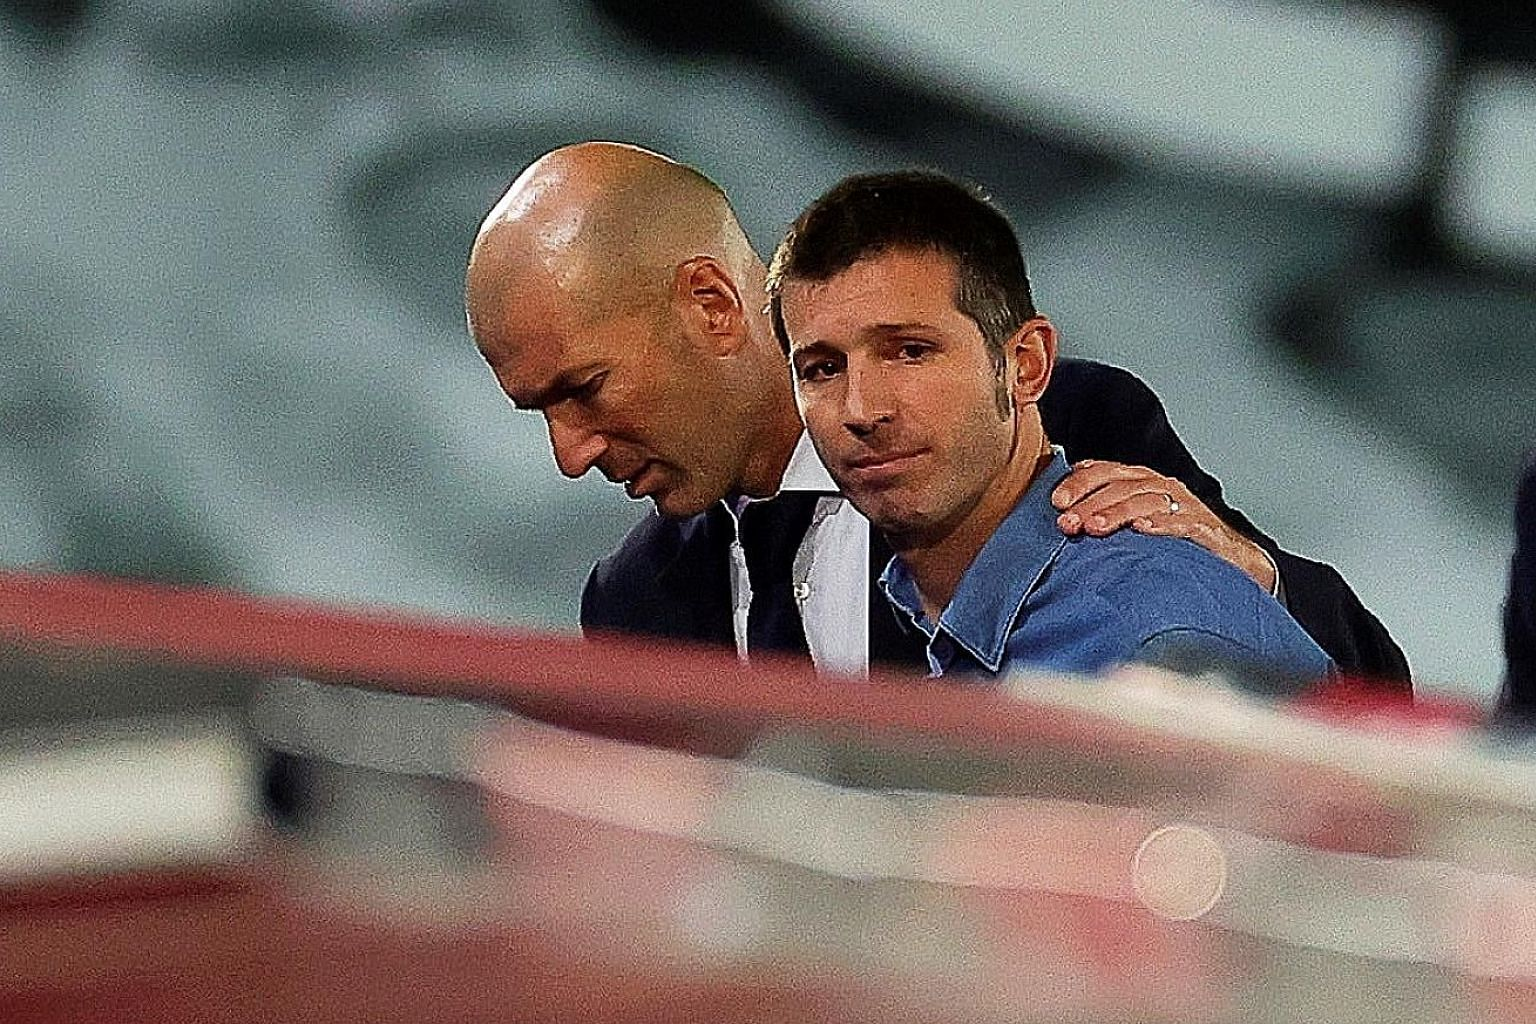 Valencia coach Albert Celades with Real Madrid's Zinedine Zidane after Real's 3-0 La Liga win on June 18. Celades was sacked on Monday. PHOTO: EPA-EFE